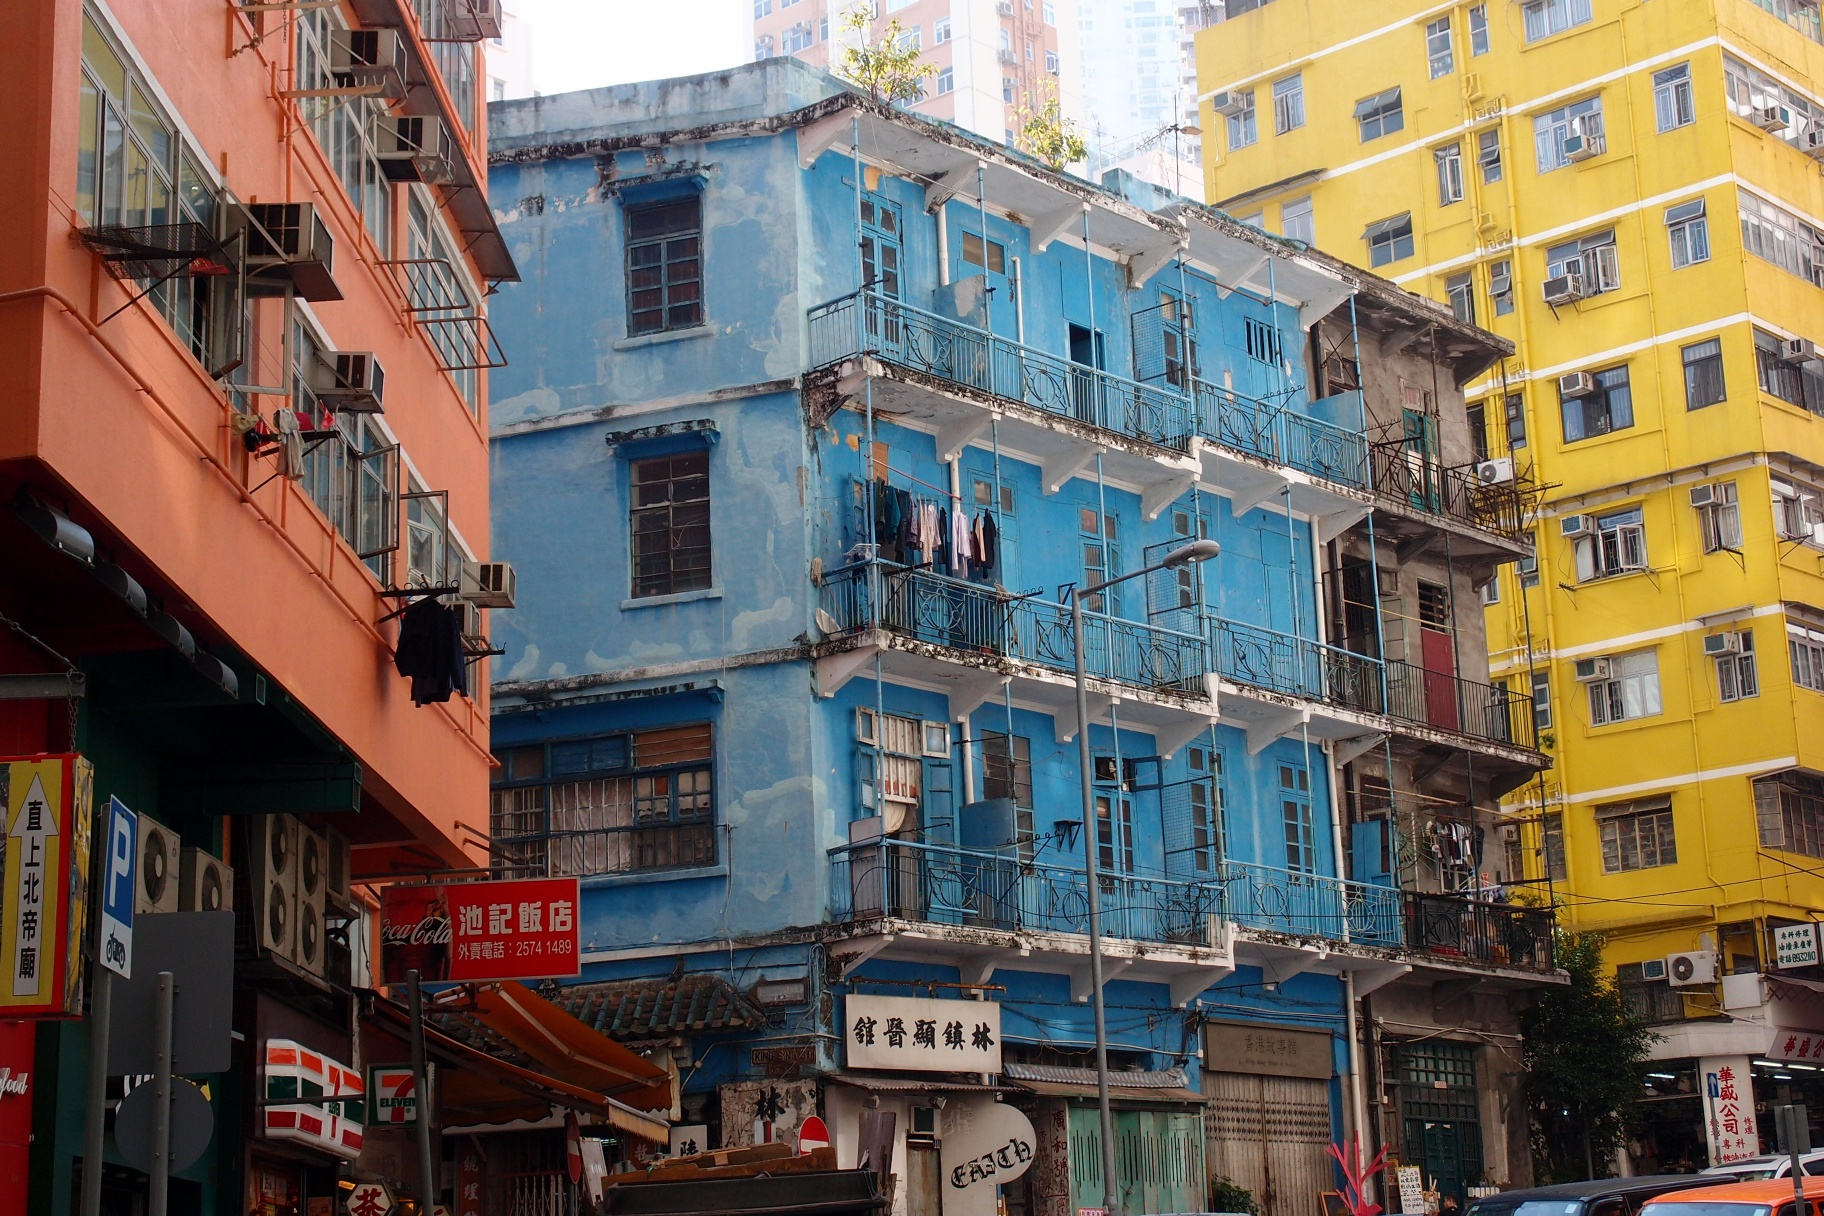 The Blue House located at Stone Nullah Lane in Wanchai and legend has it the families living in there use buckets as toilets and pay an old codger to remove the waste every day!